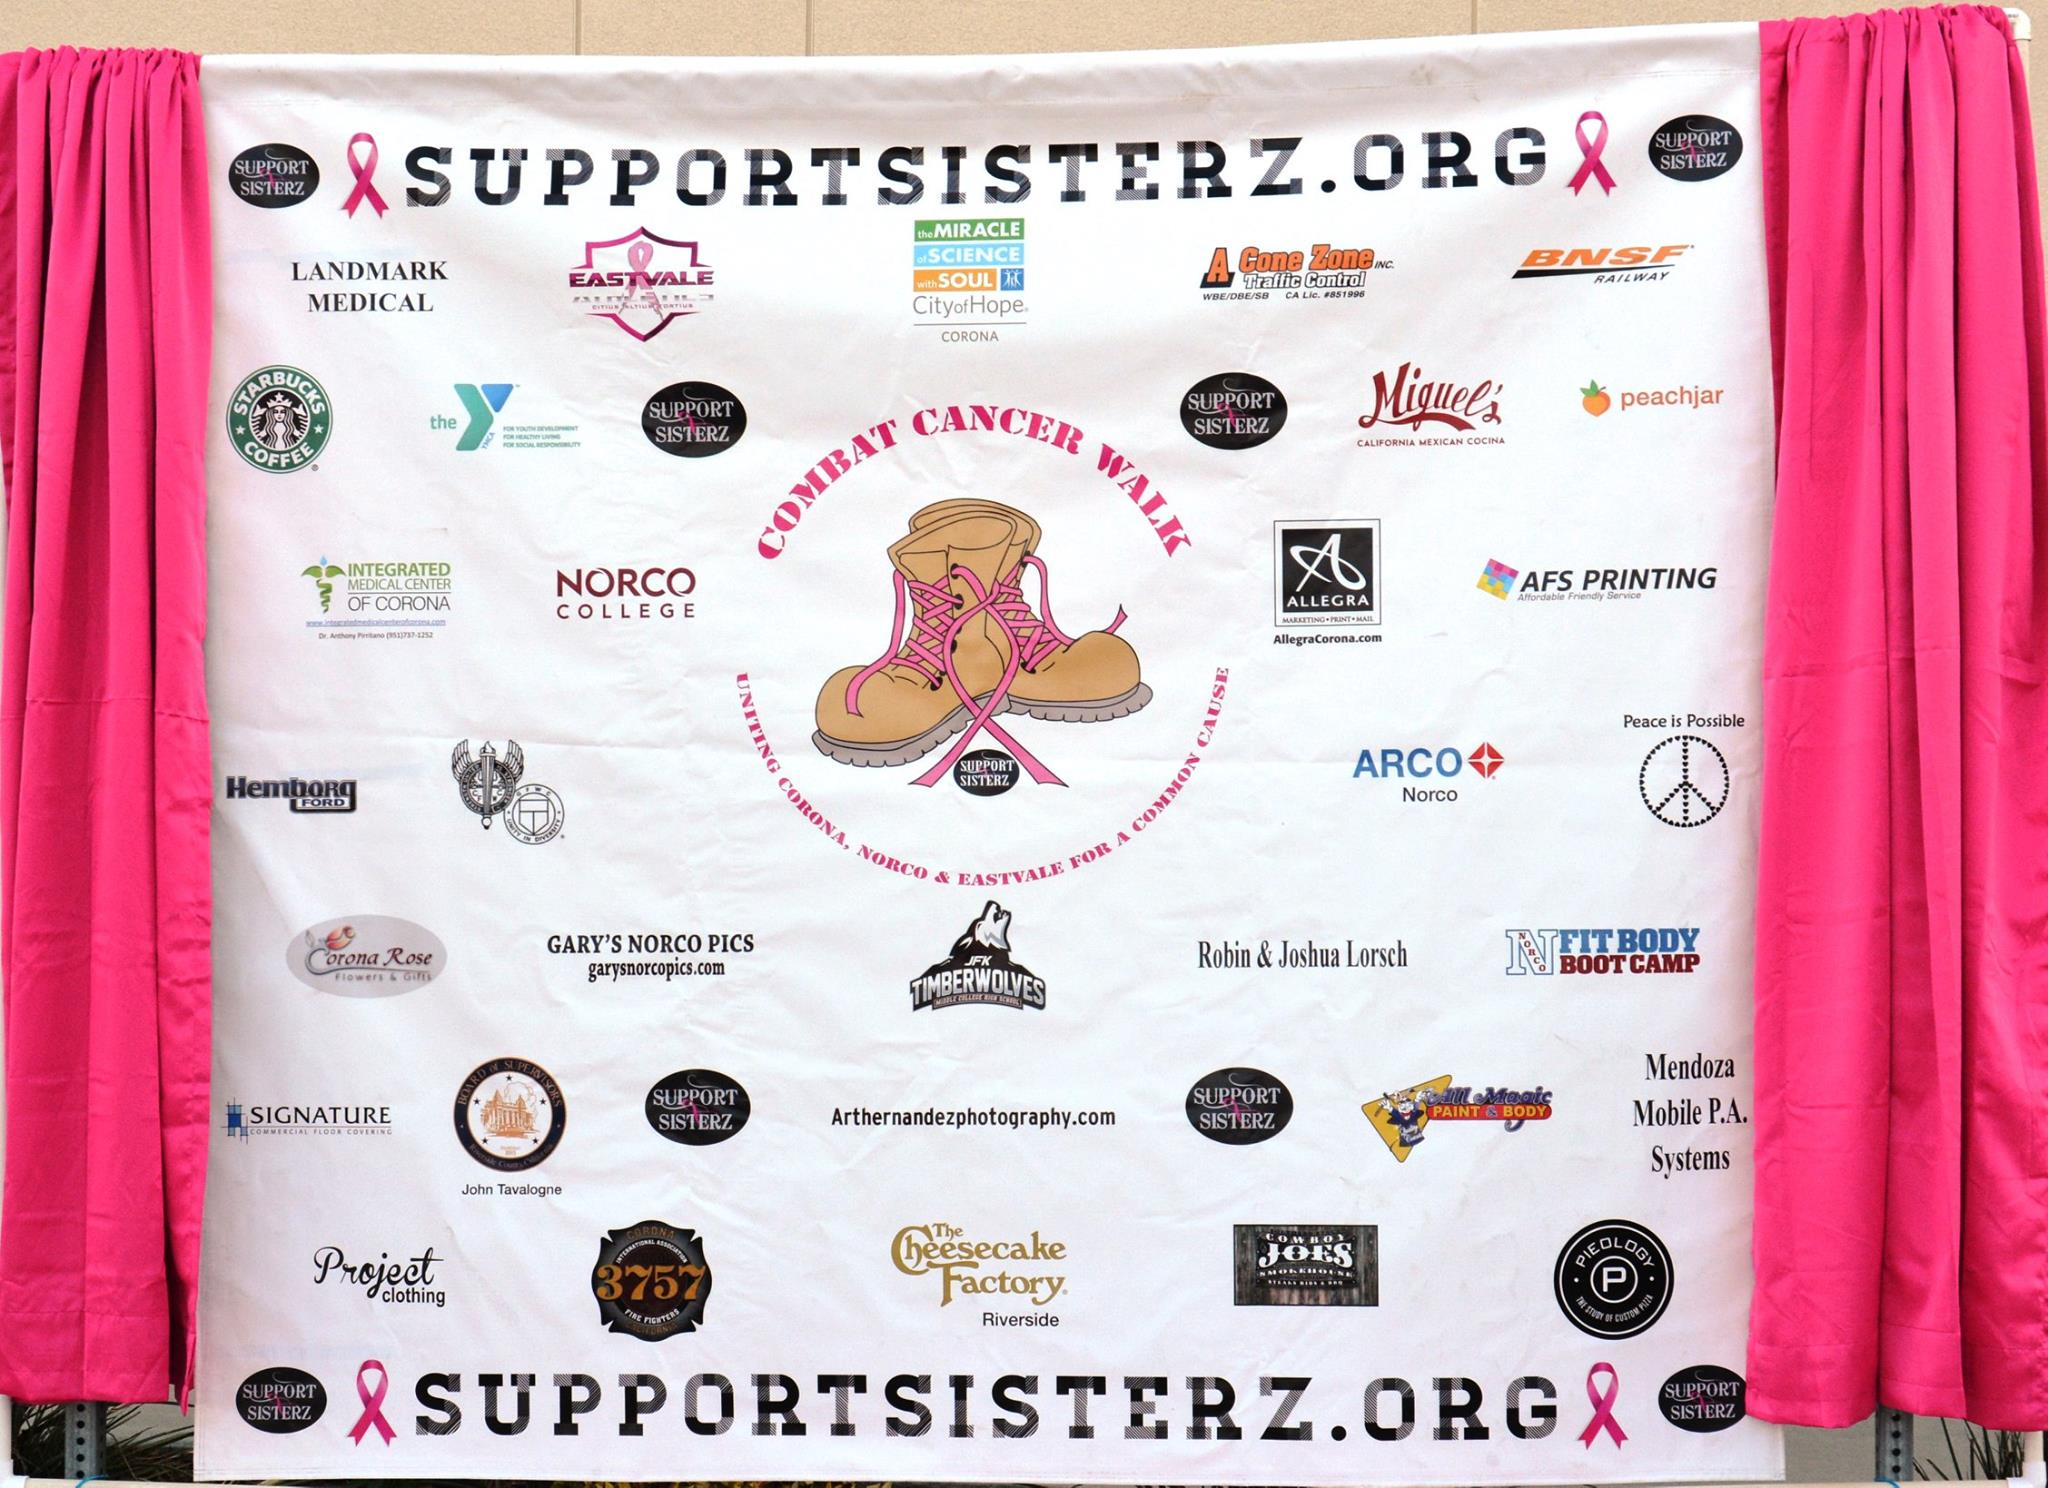 Supportsisterz.org banner